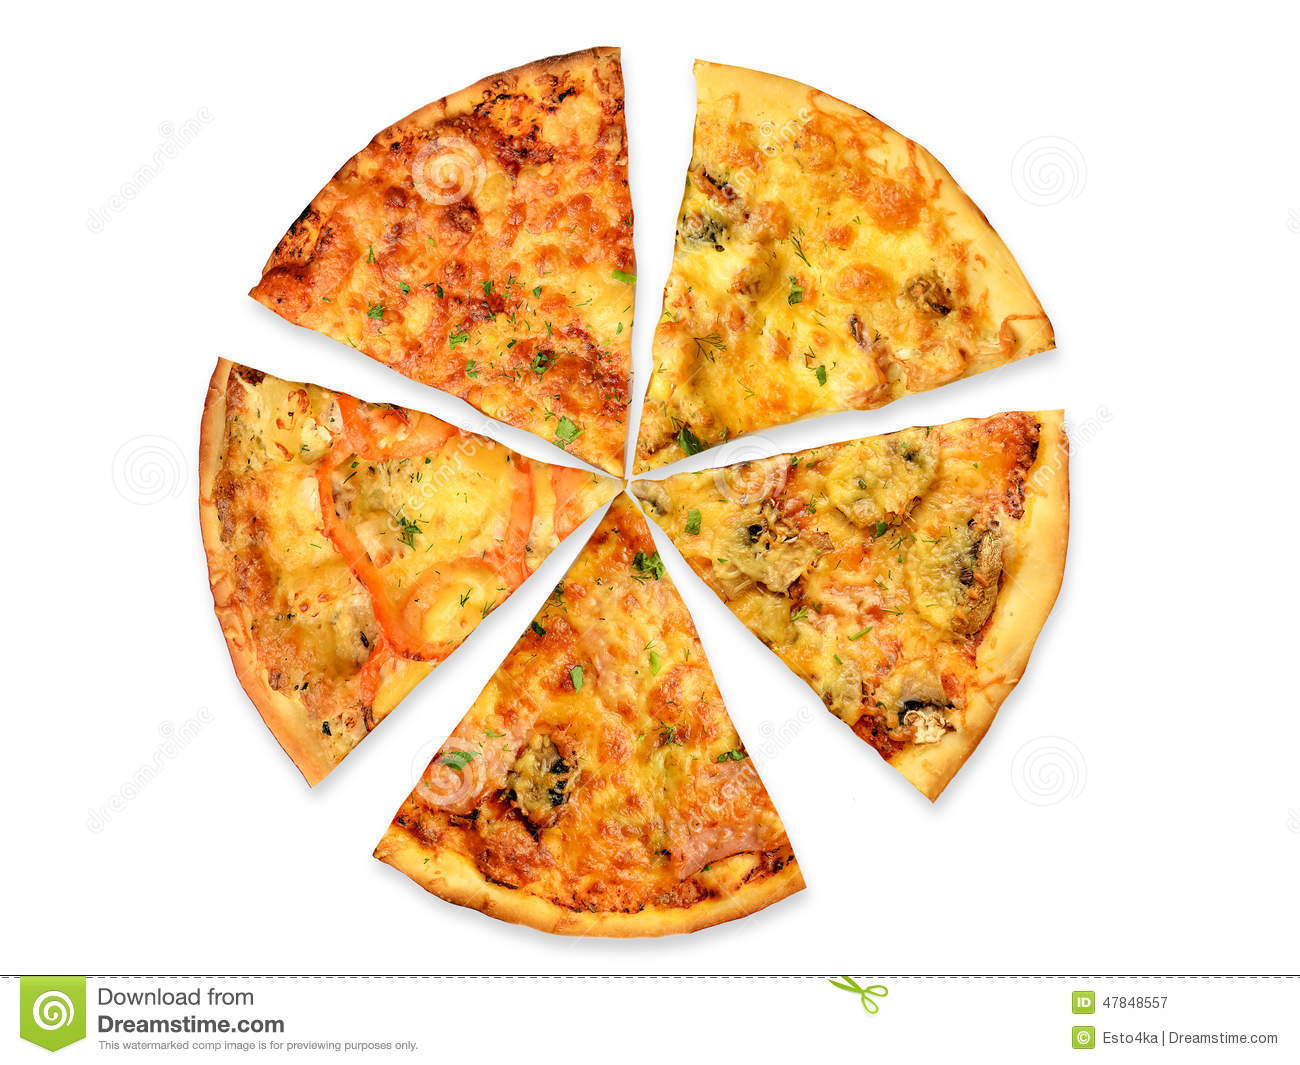 Broccoli Soorten 5 Kinds Of Pizza Stock Image. Image Of Pizza, Cooking